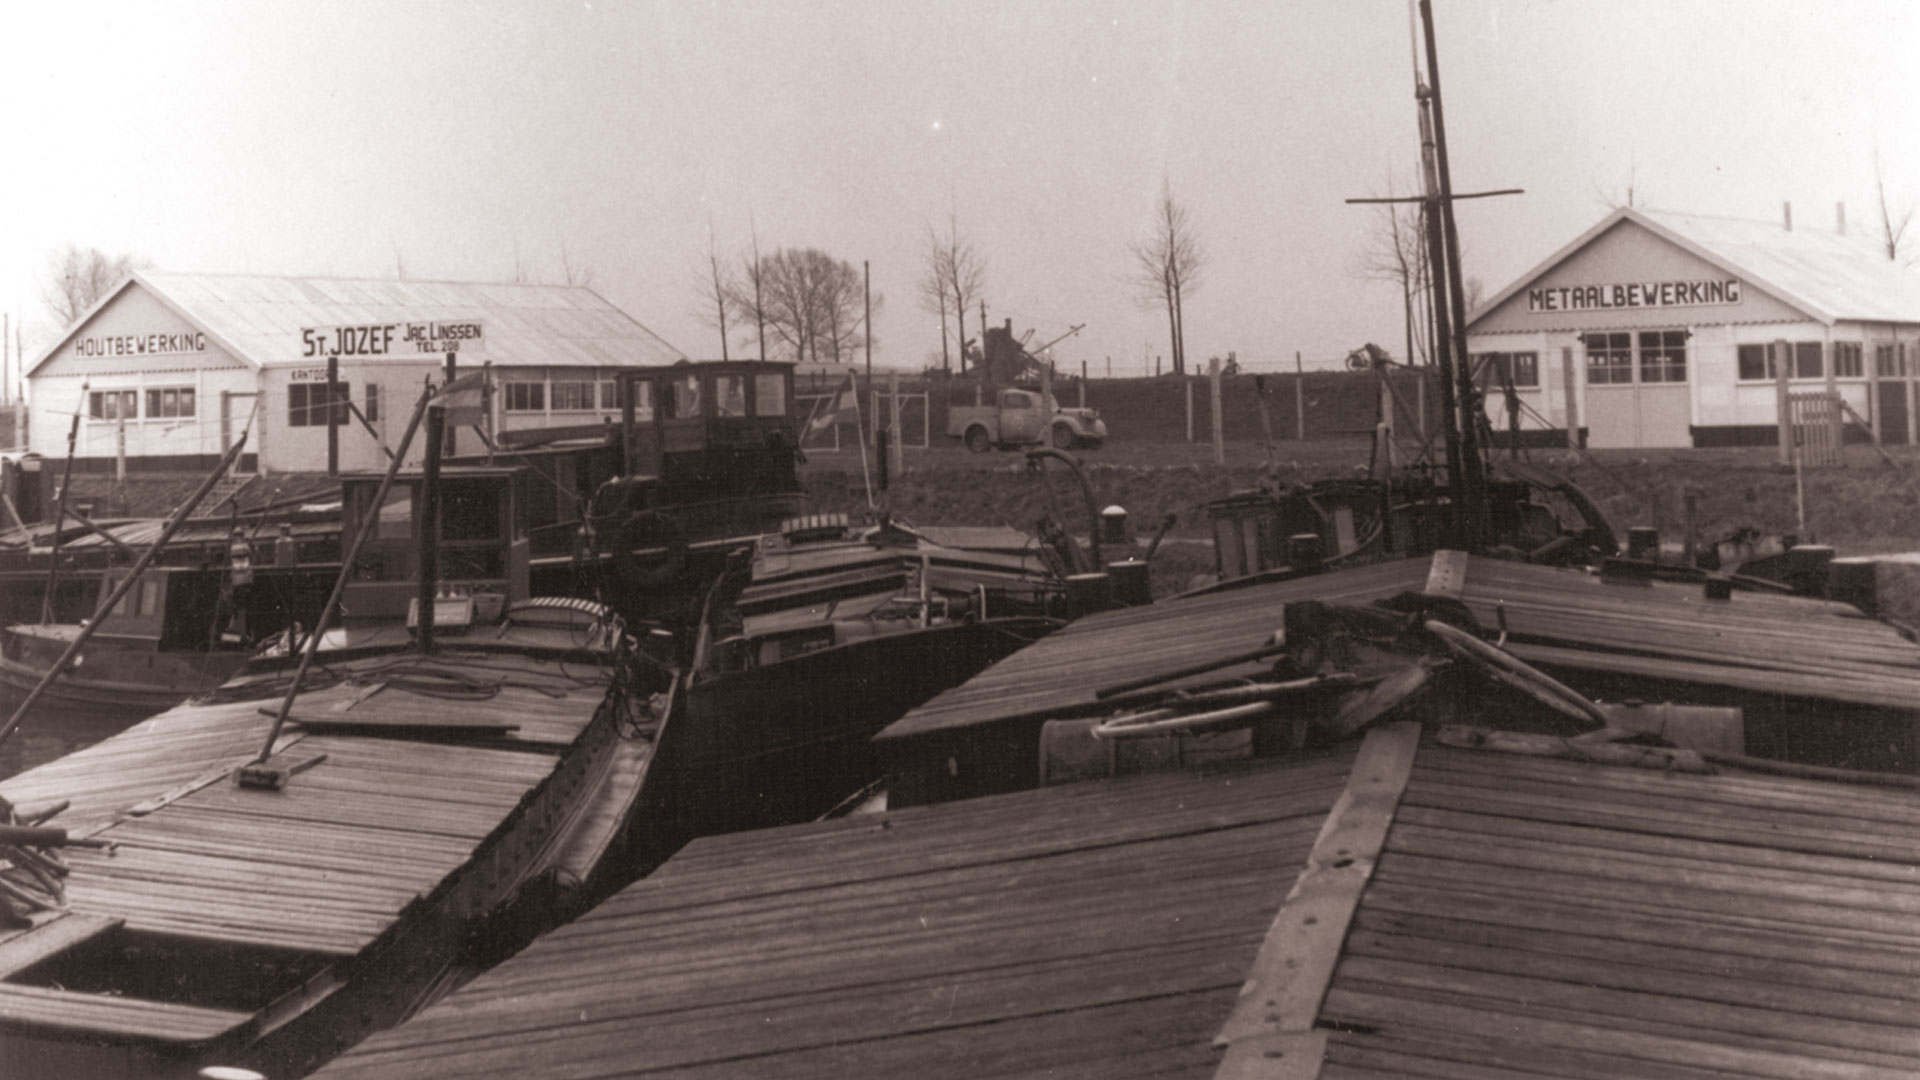 Inland harbour Maasbracht in 1952